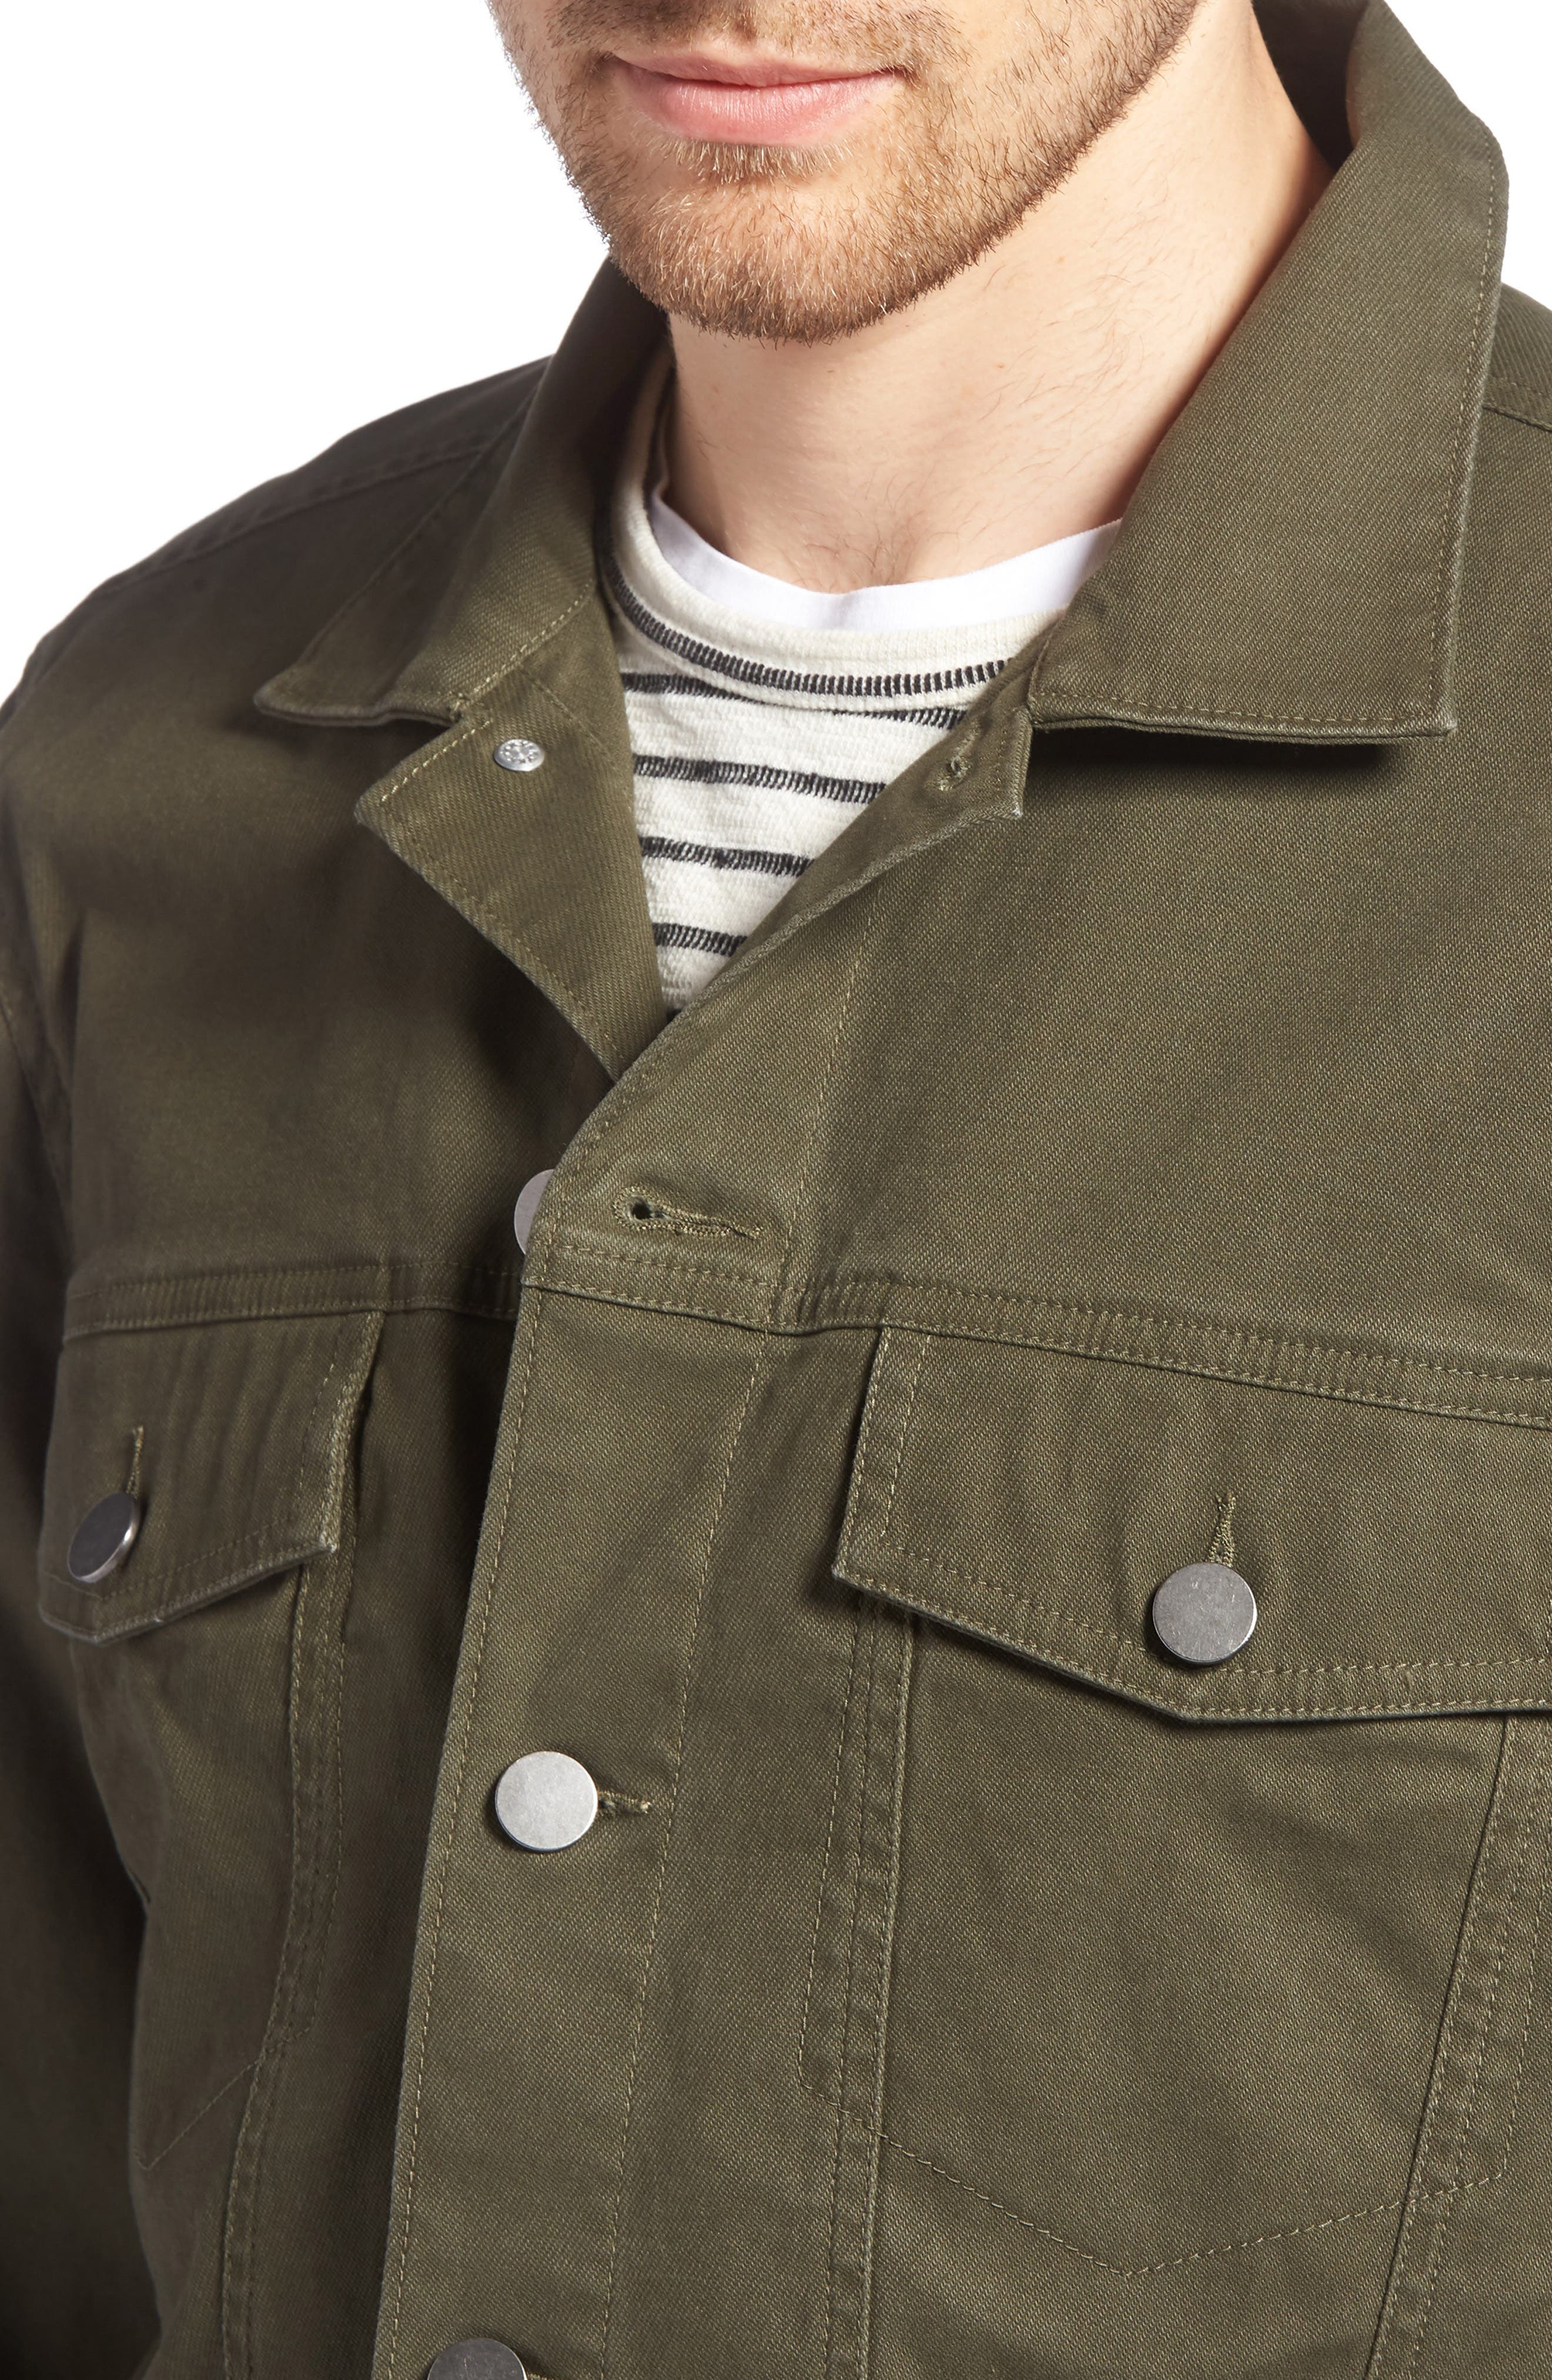 Stretch Cotton Trucker Jacket,                             Alternate thumbnail 4, color,                             GREEN FOREST